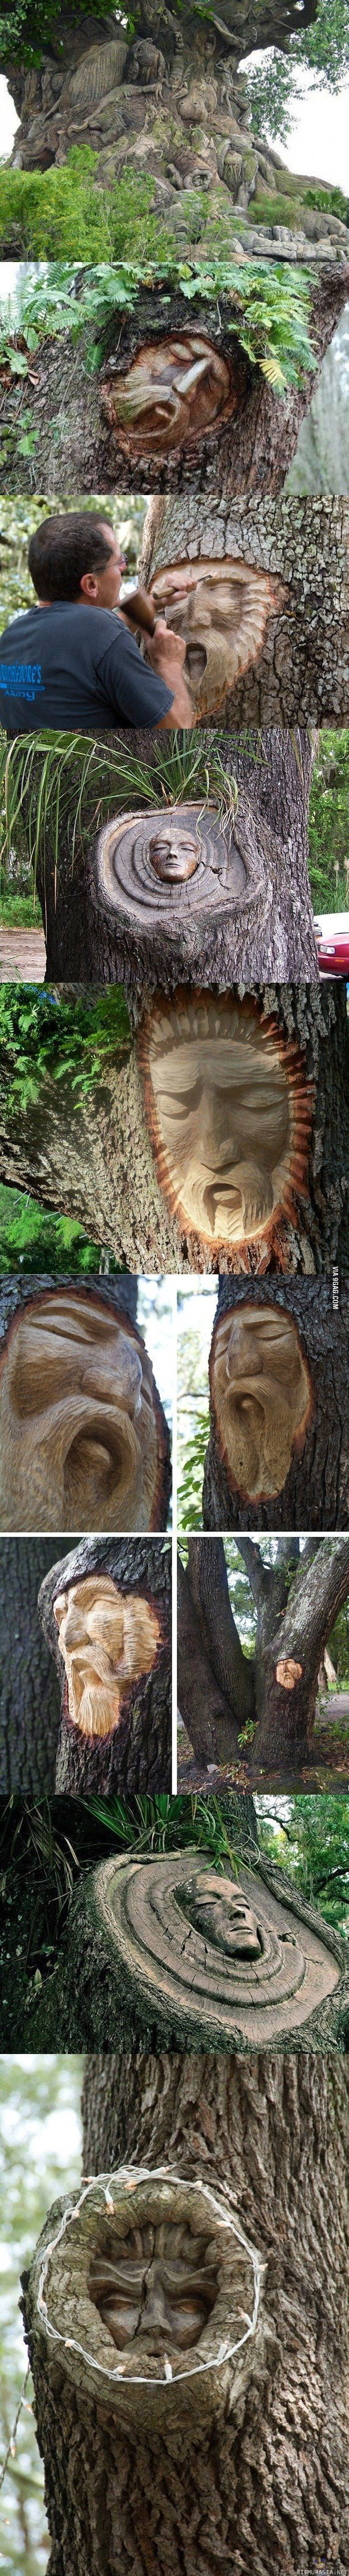 Carving a living tree